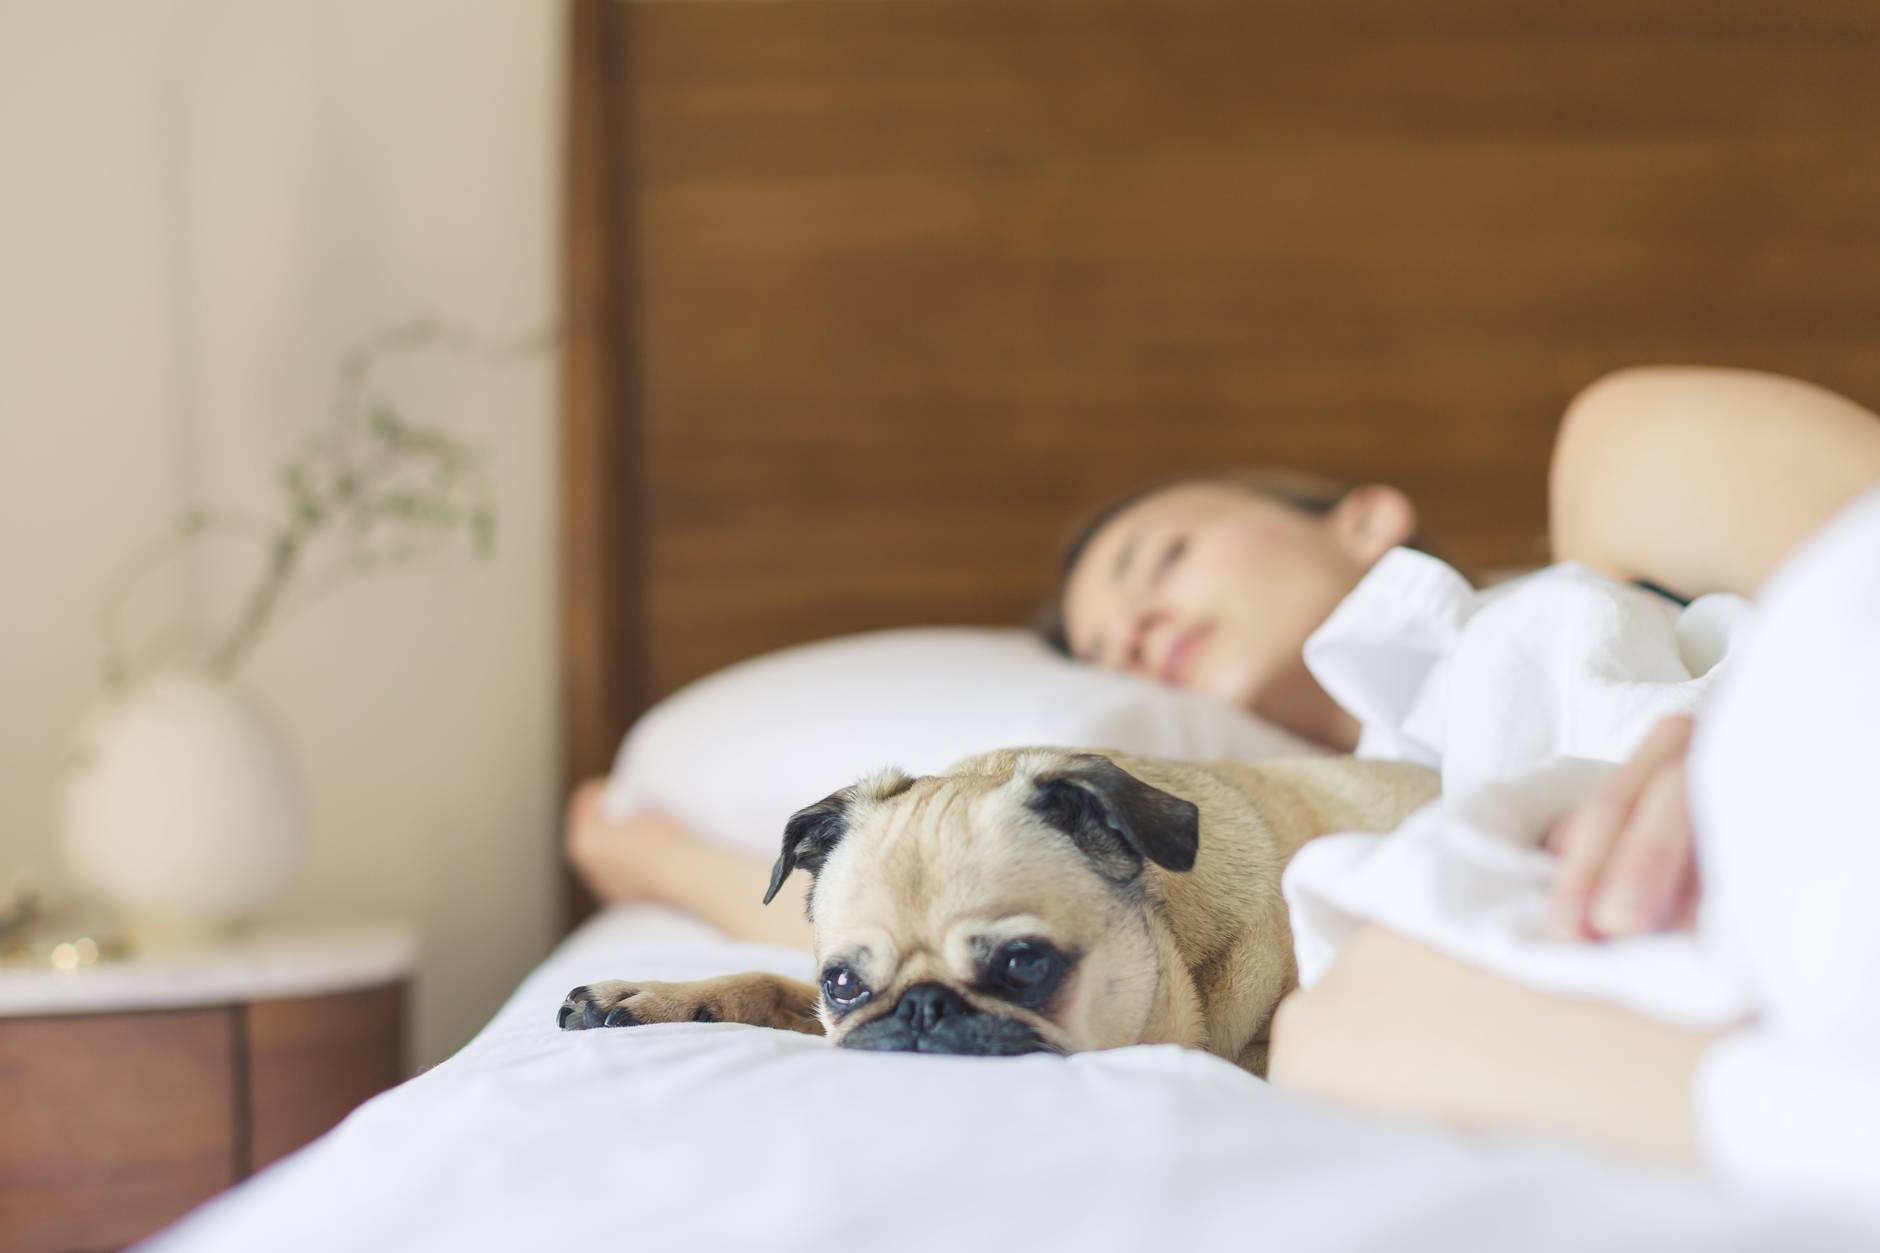 women in bed sleep with dog after taking cannabis for her insomnia